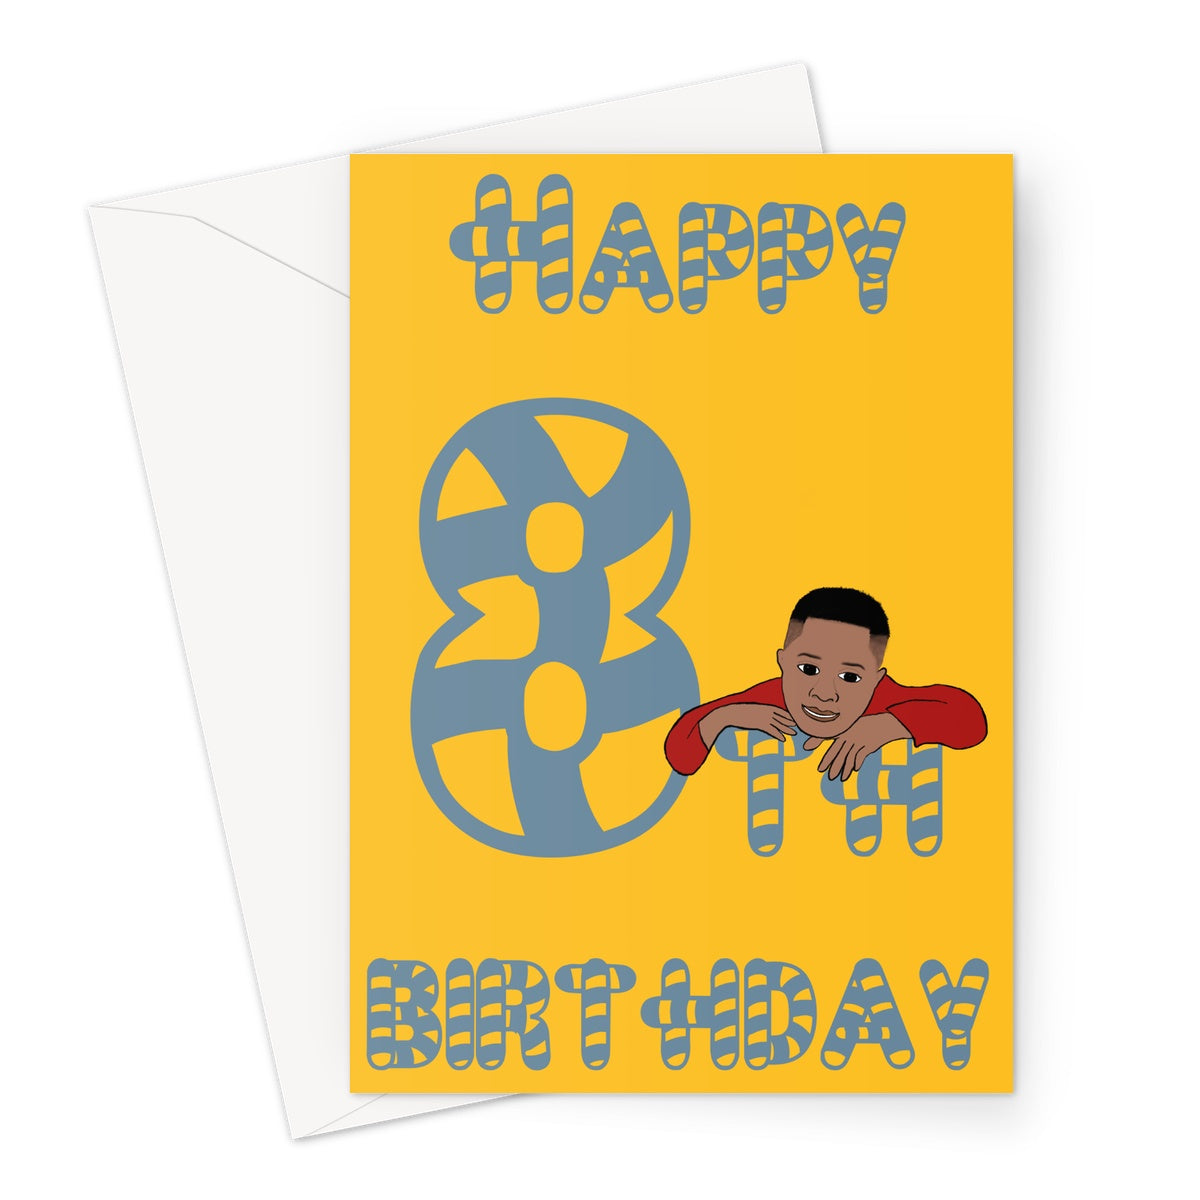 Jamal is 8 Greeting Card - Expressive Shades